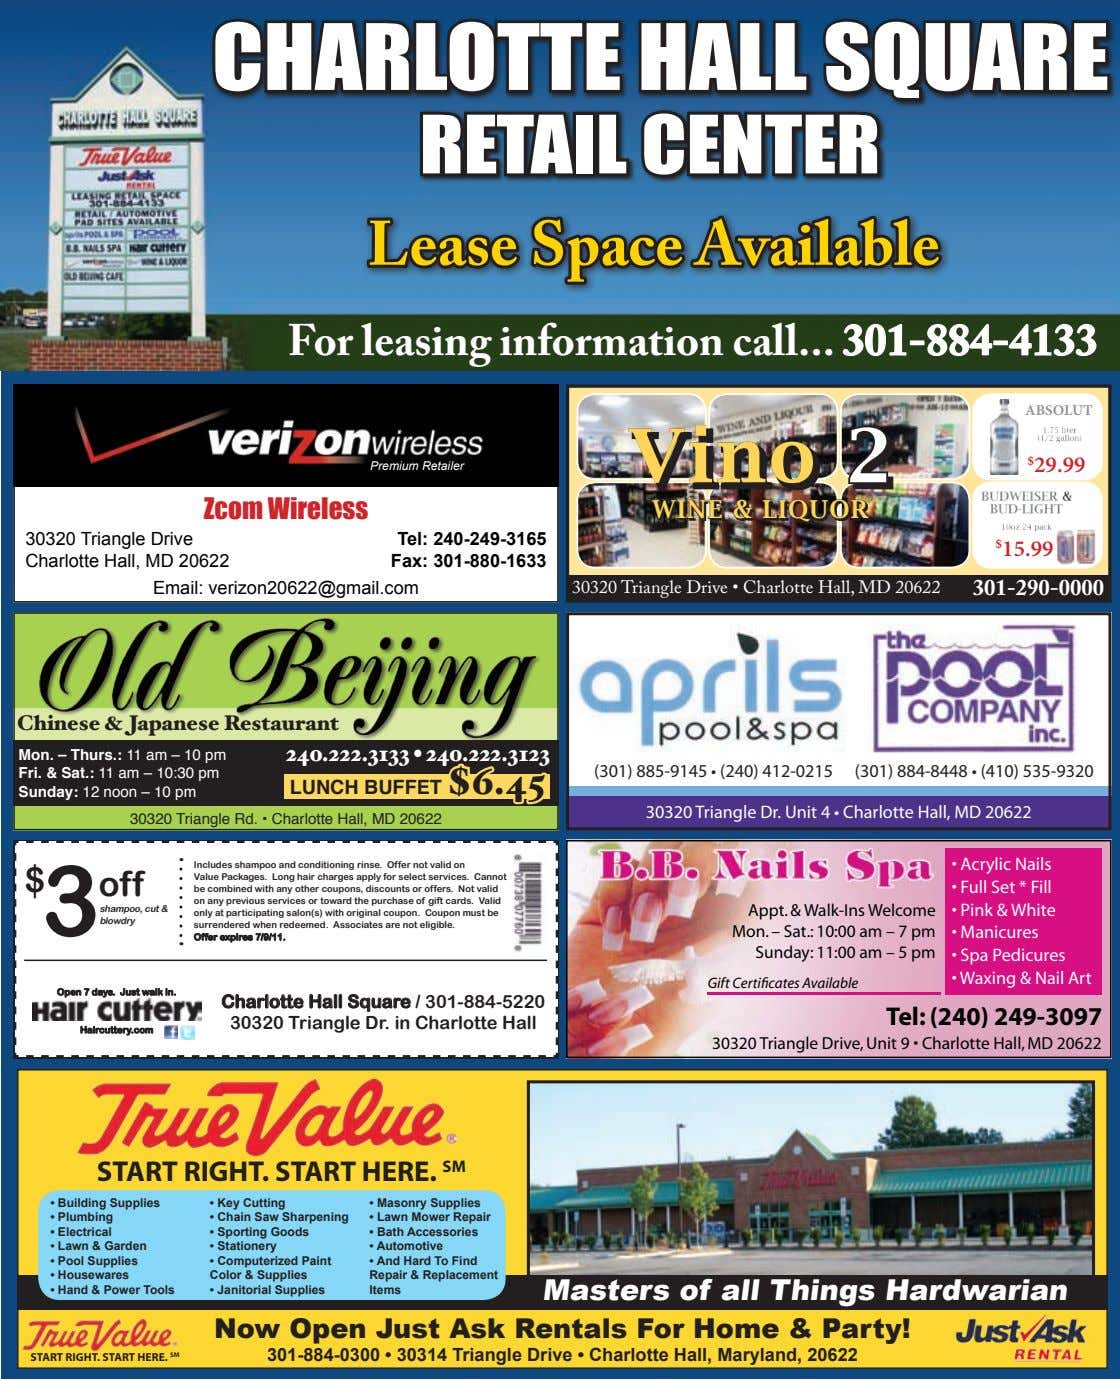 CHARLOTTE HALL SQUARE RETAIL CENTER Lease Space Available For leasing information call 301-884-4133 ABSOLUT Vino